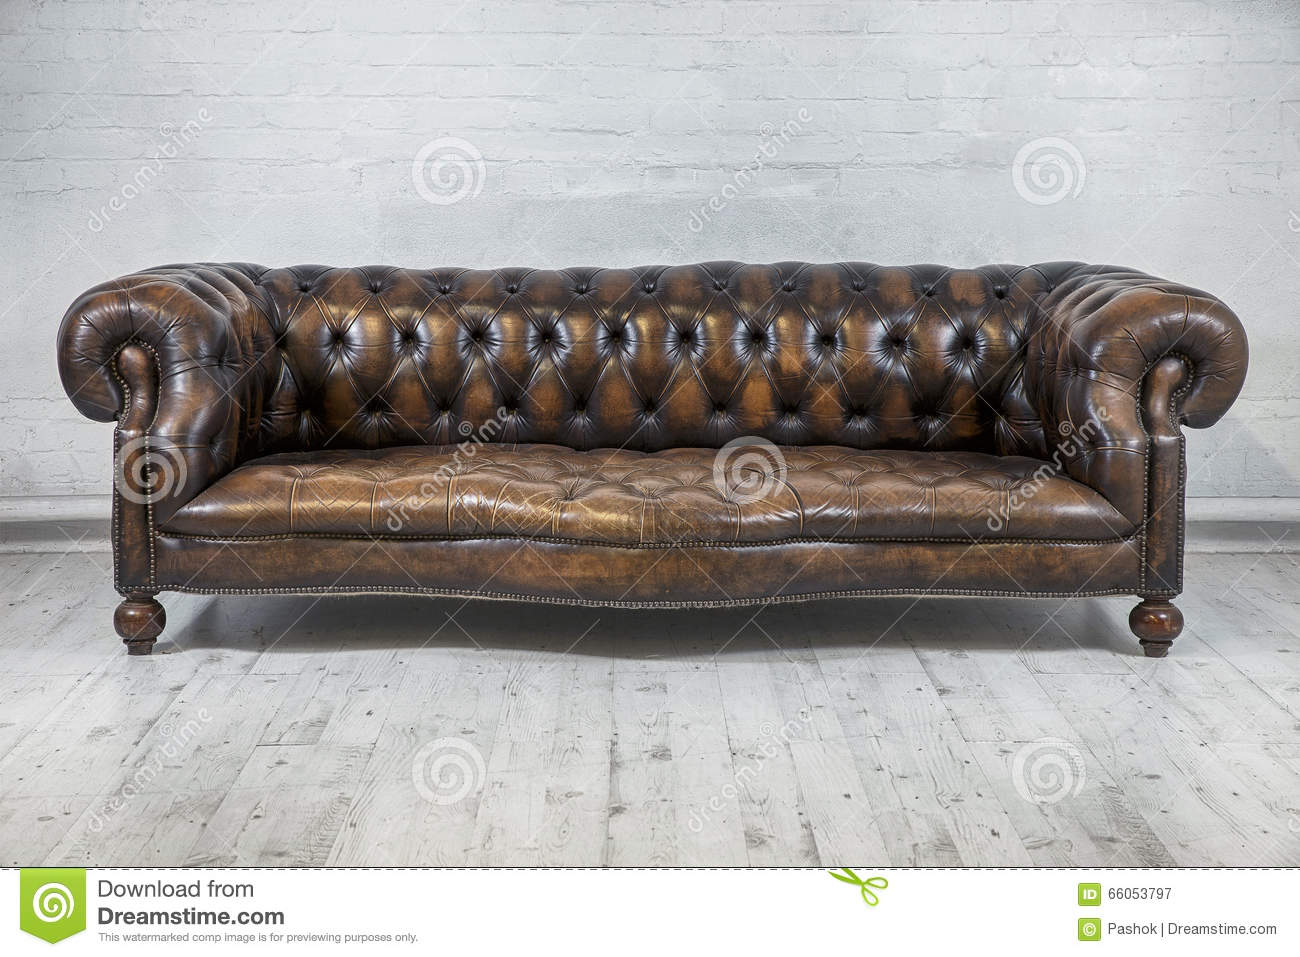 Vintage sofa stock image Image of antique, architecture 66053797